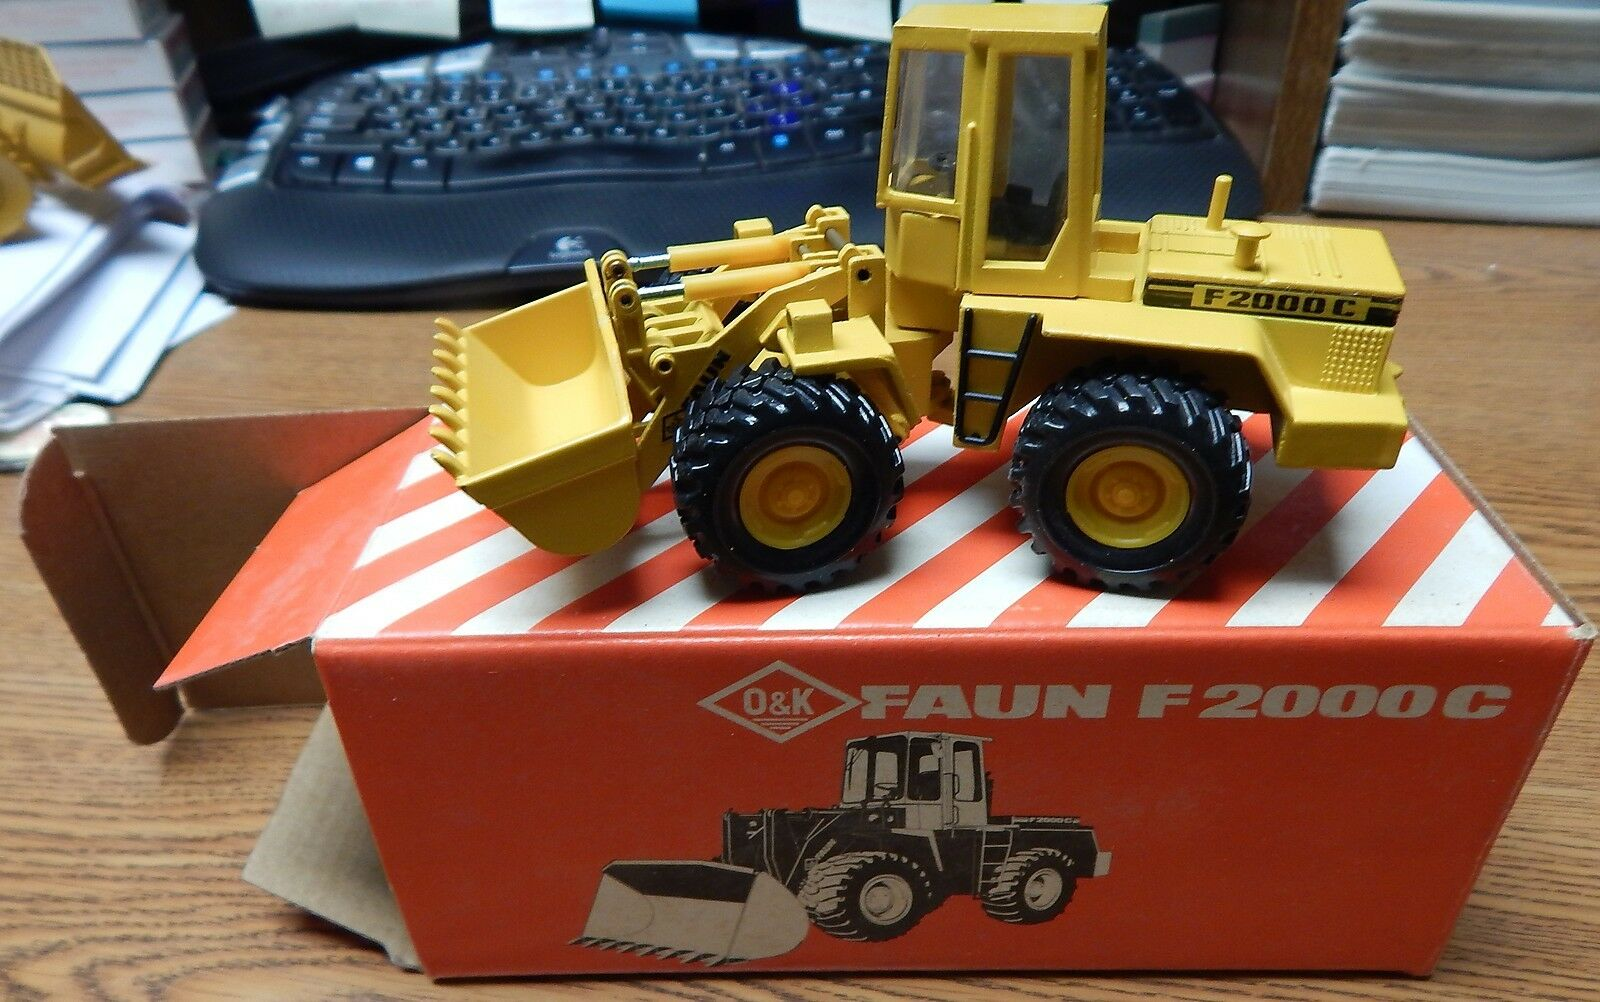 NZG O&K  192 FAUN F 2000 C WHEEL LOADER NEW IN BOX 1 50 SCALE LQQK